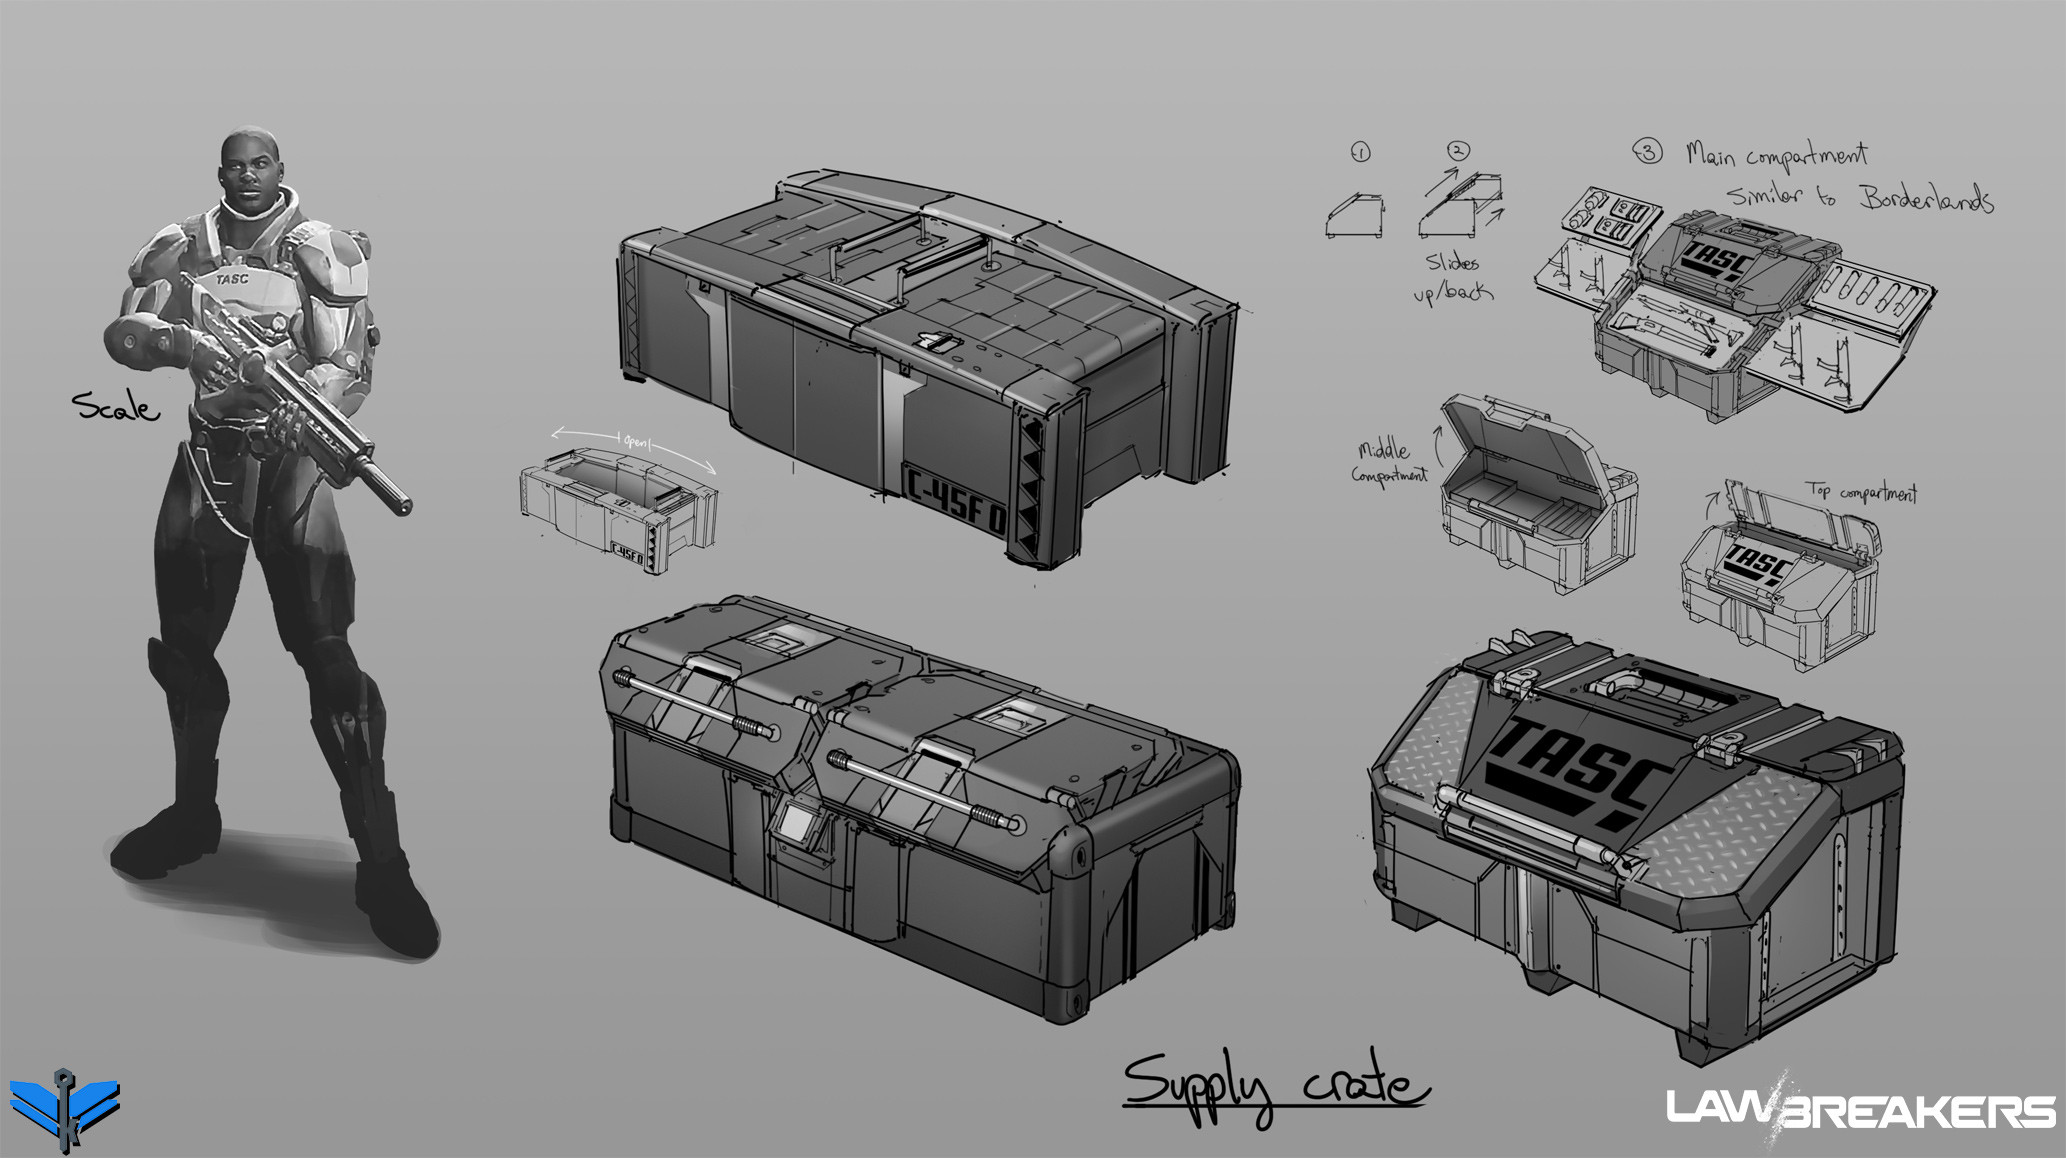 Supply crate prop concepts